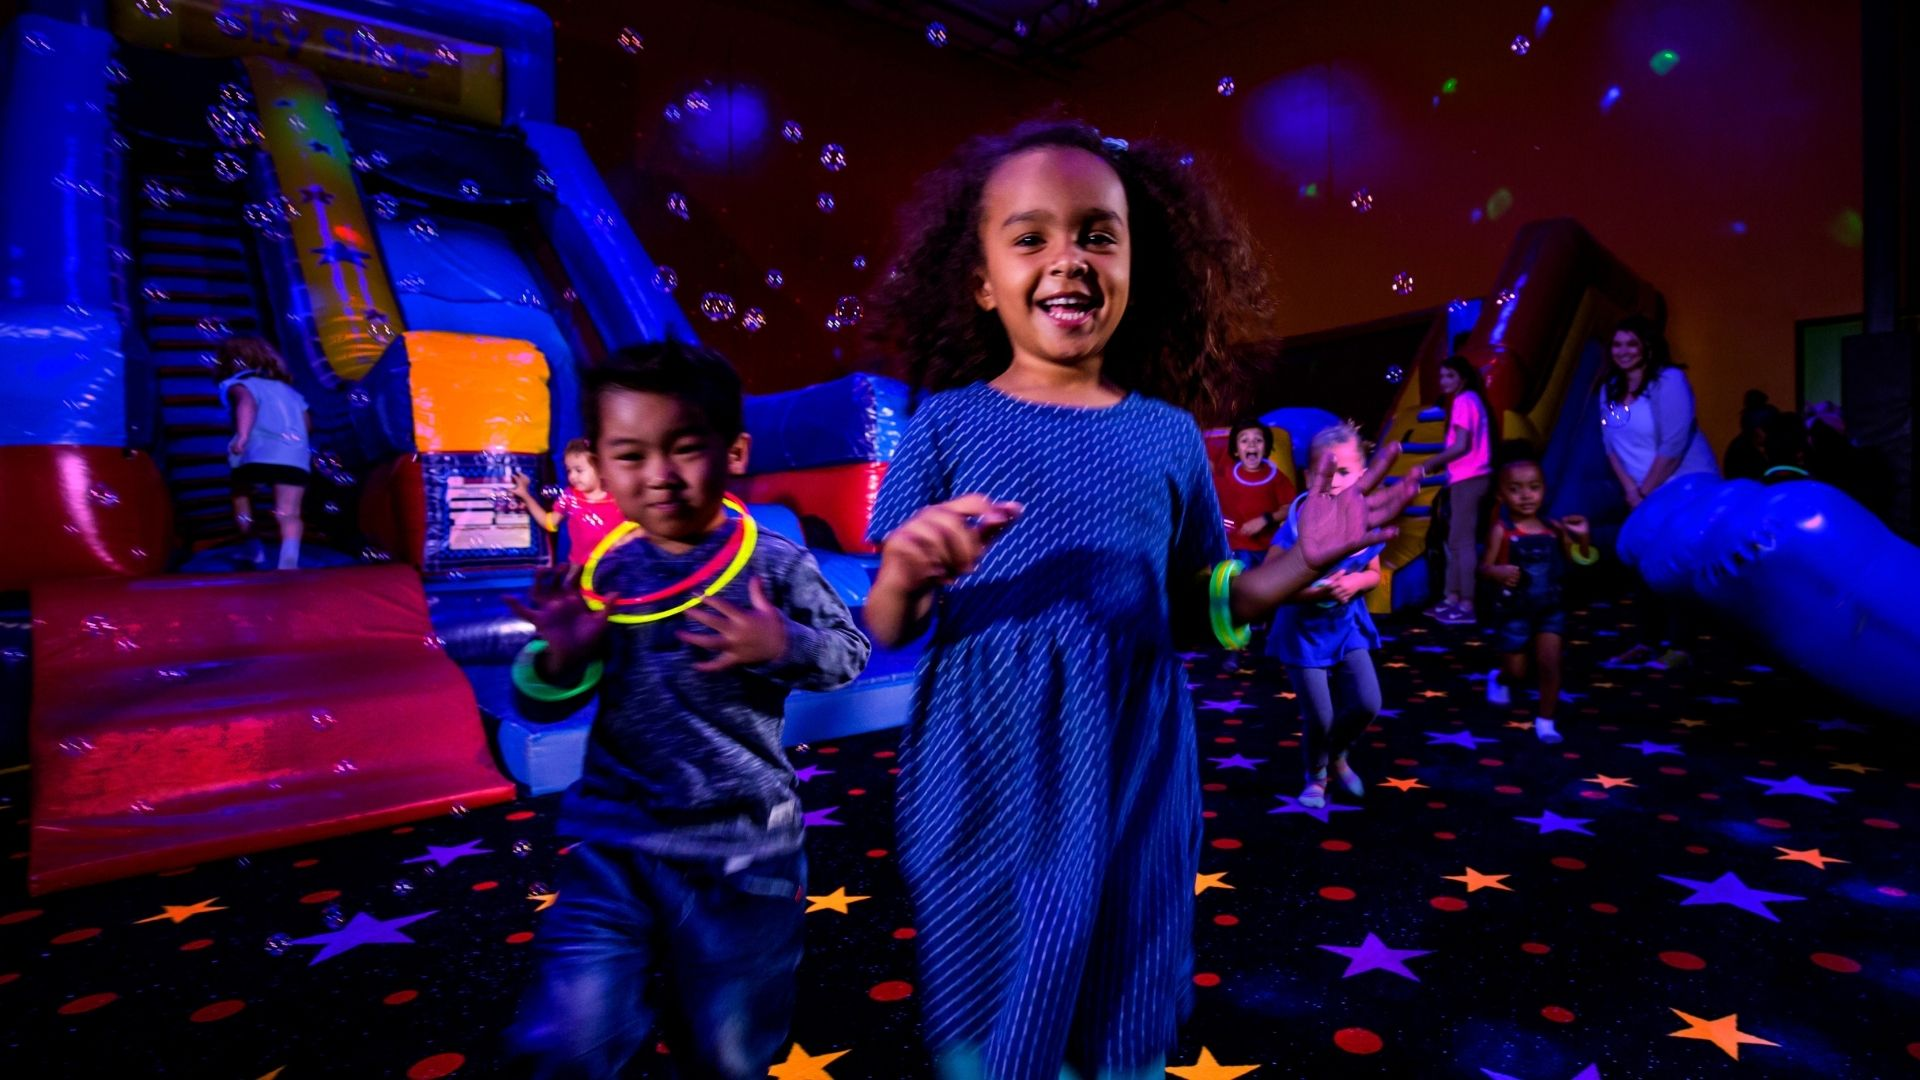 Kids celebrate at the best birthday party place with glow and bubbles